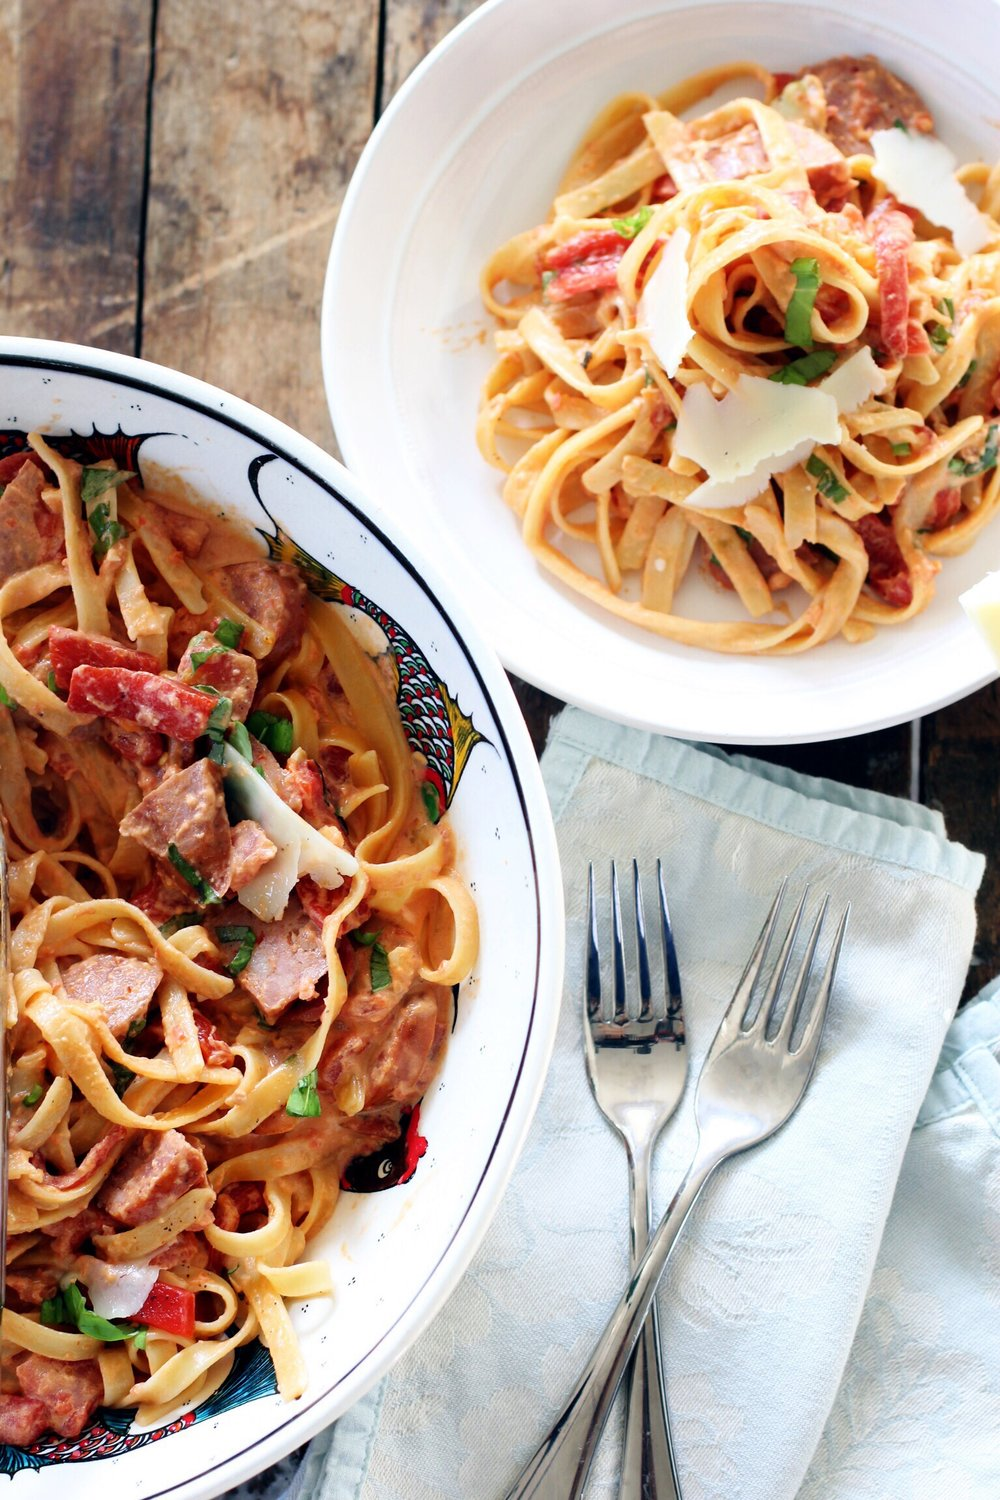 Fettucine with vodka cream sauce, roasted red peppers, and Andouille sausage - The Pastiche